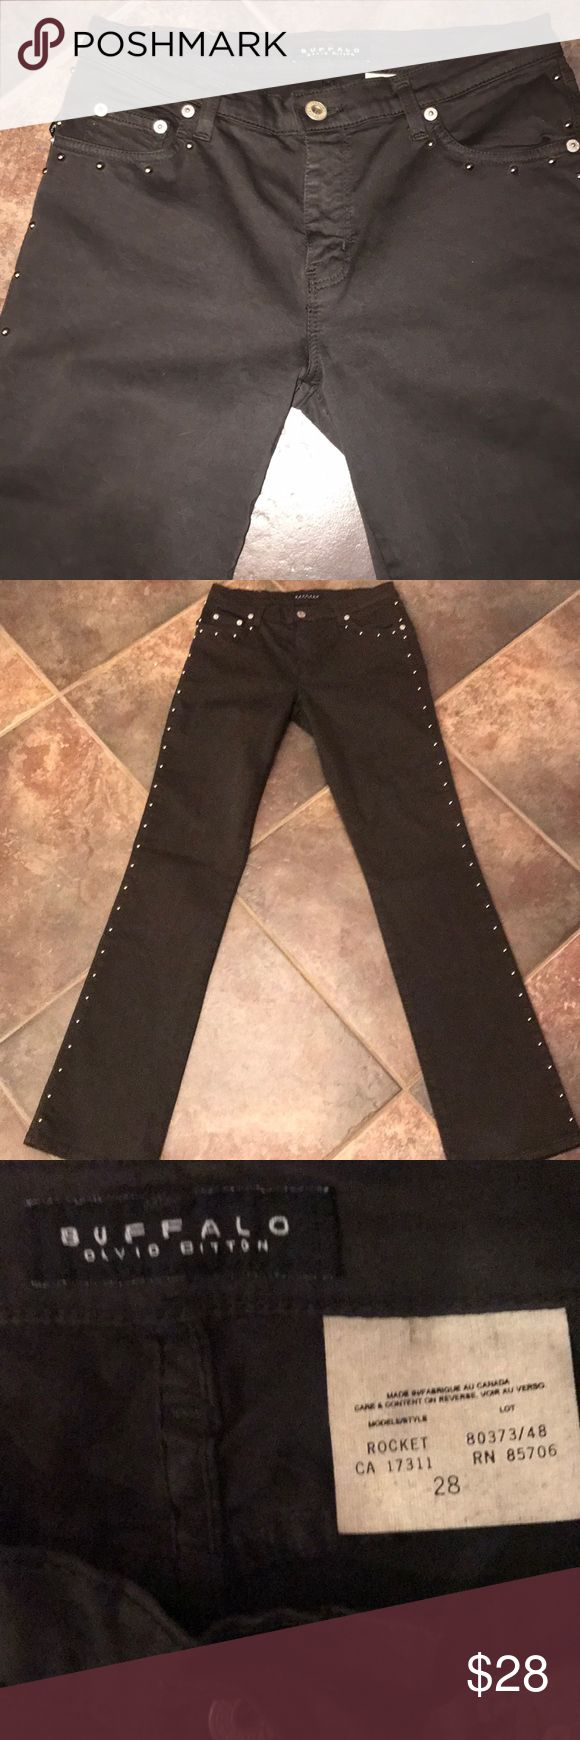 "BUFFALO JEANS DAVIDBITTON BrWn Sz28 Silver Studs. BUFFALO JEANS DAVID BITTON Brown  Sz28 Silver Studs along sides and pockets. Stretch Inseam 32"". Never worn Buffalo David Bitton Jeans"